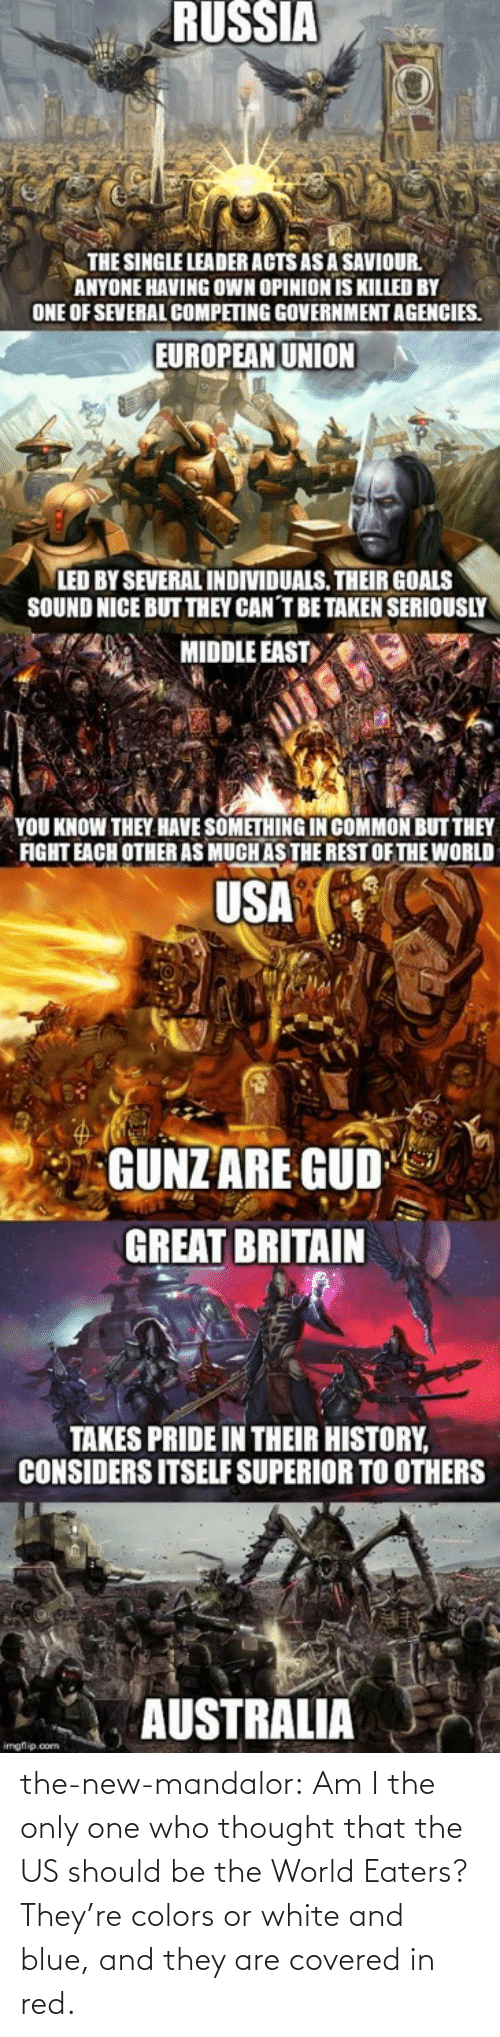 am i the only: the-new-mandalor:  Am I the only one who thought that the US should be the World Eaters? They're colors or white and blue, and they are covered in red.